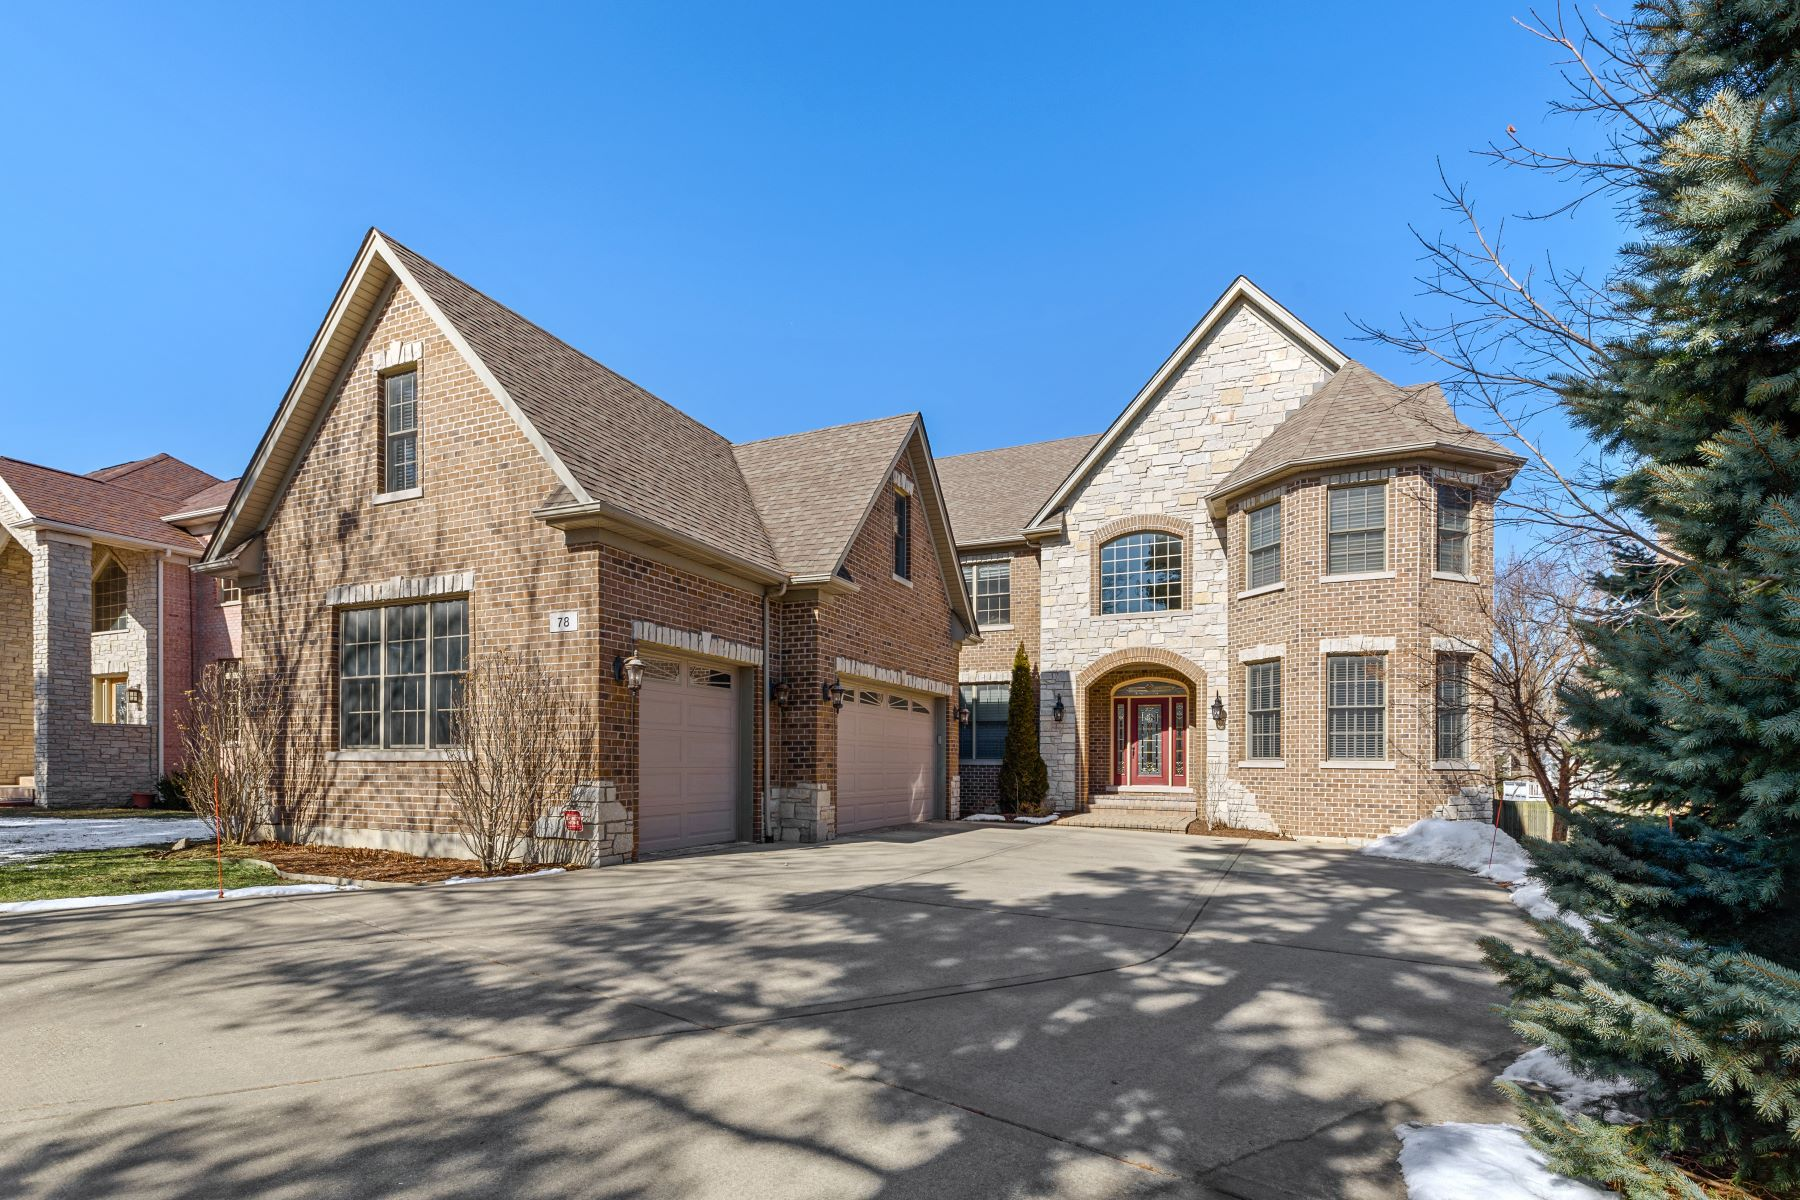 Single Family Homes for Active at Move Right In 78 E Wilmette Avenue Palatine, Illinois 60067 United States